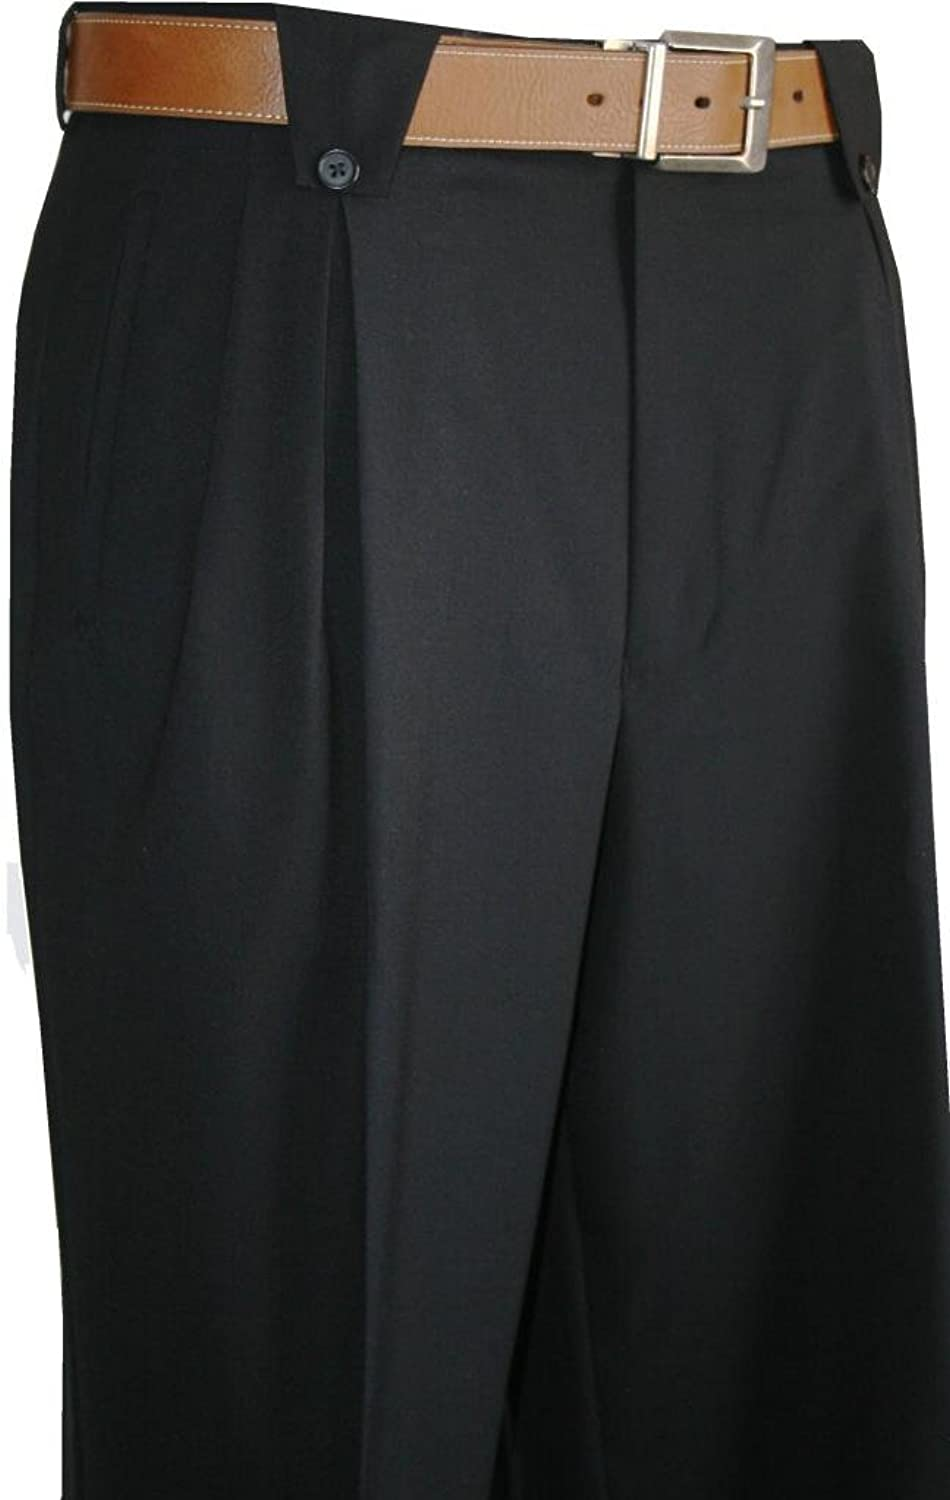 1930s Style Men's Pants Wide Leg Mens Pants Black $99.00 AT vintagedancer.com